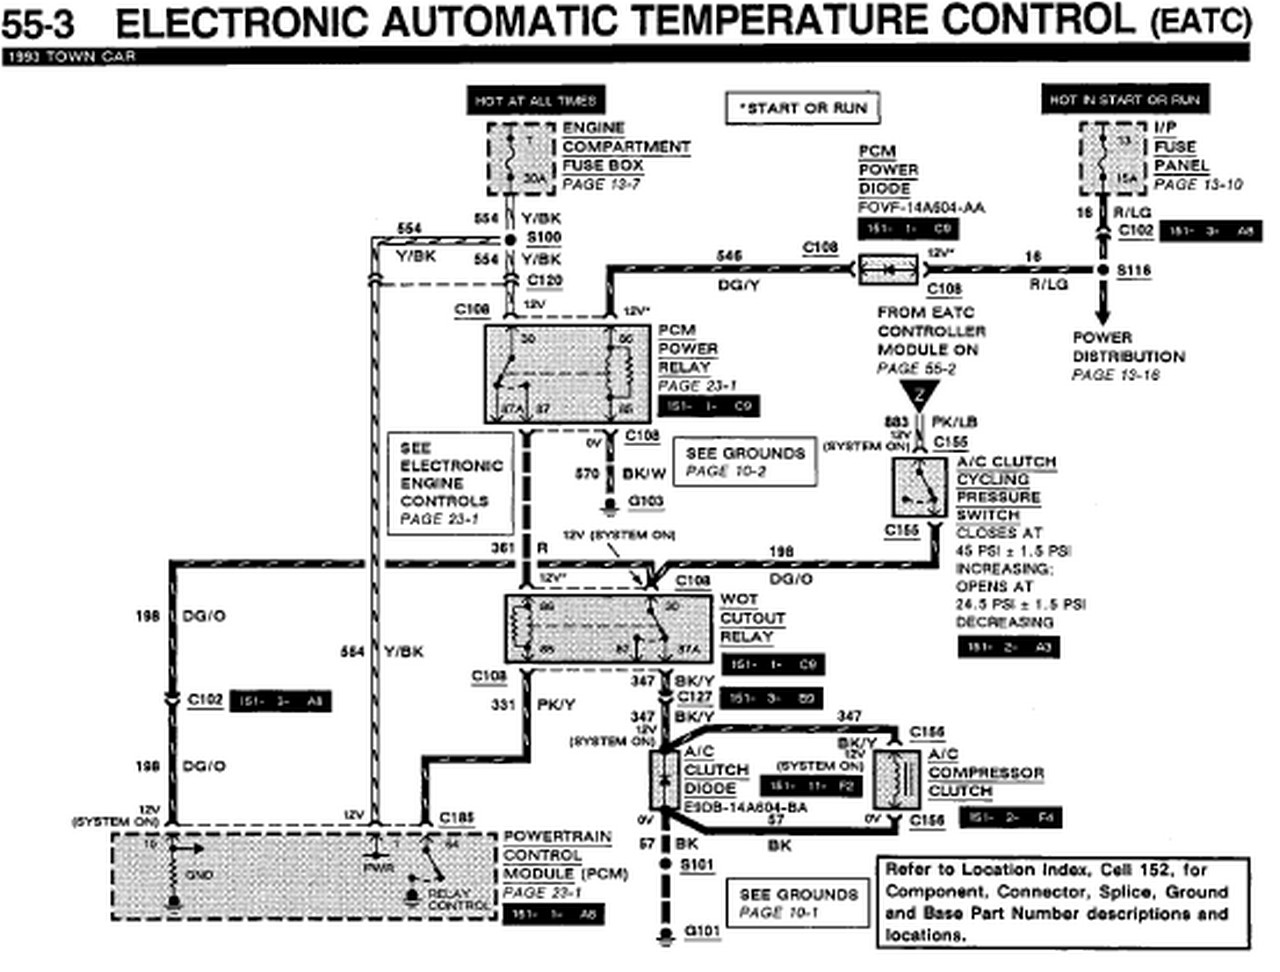 ford eatc wiring diagram